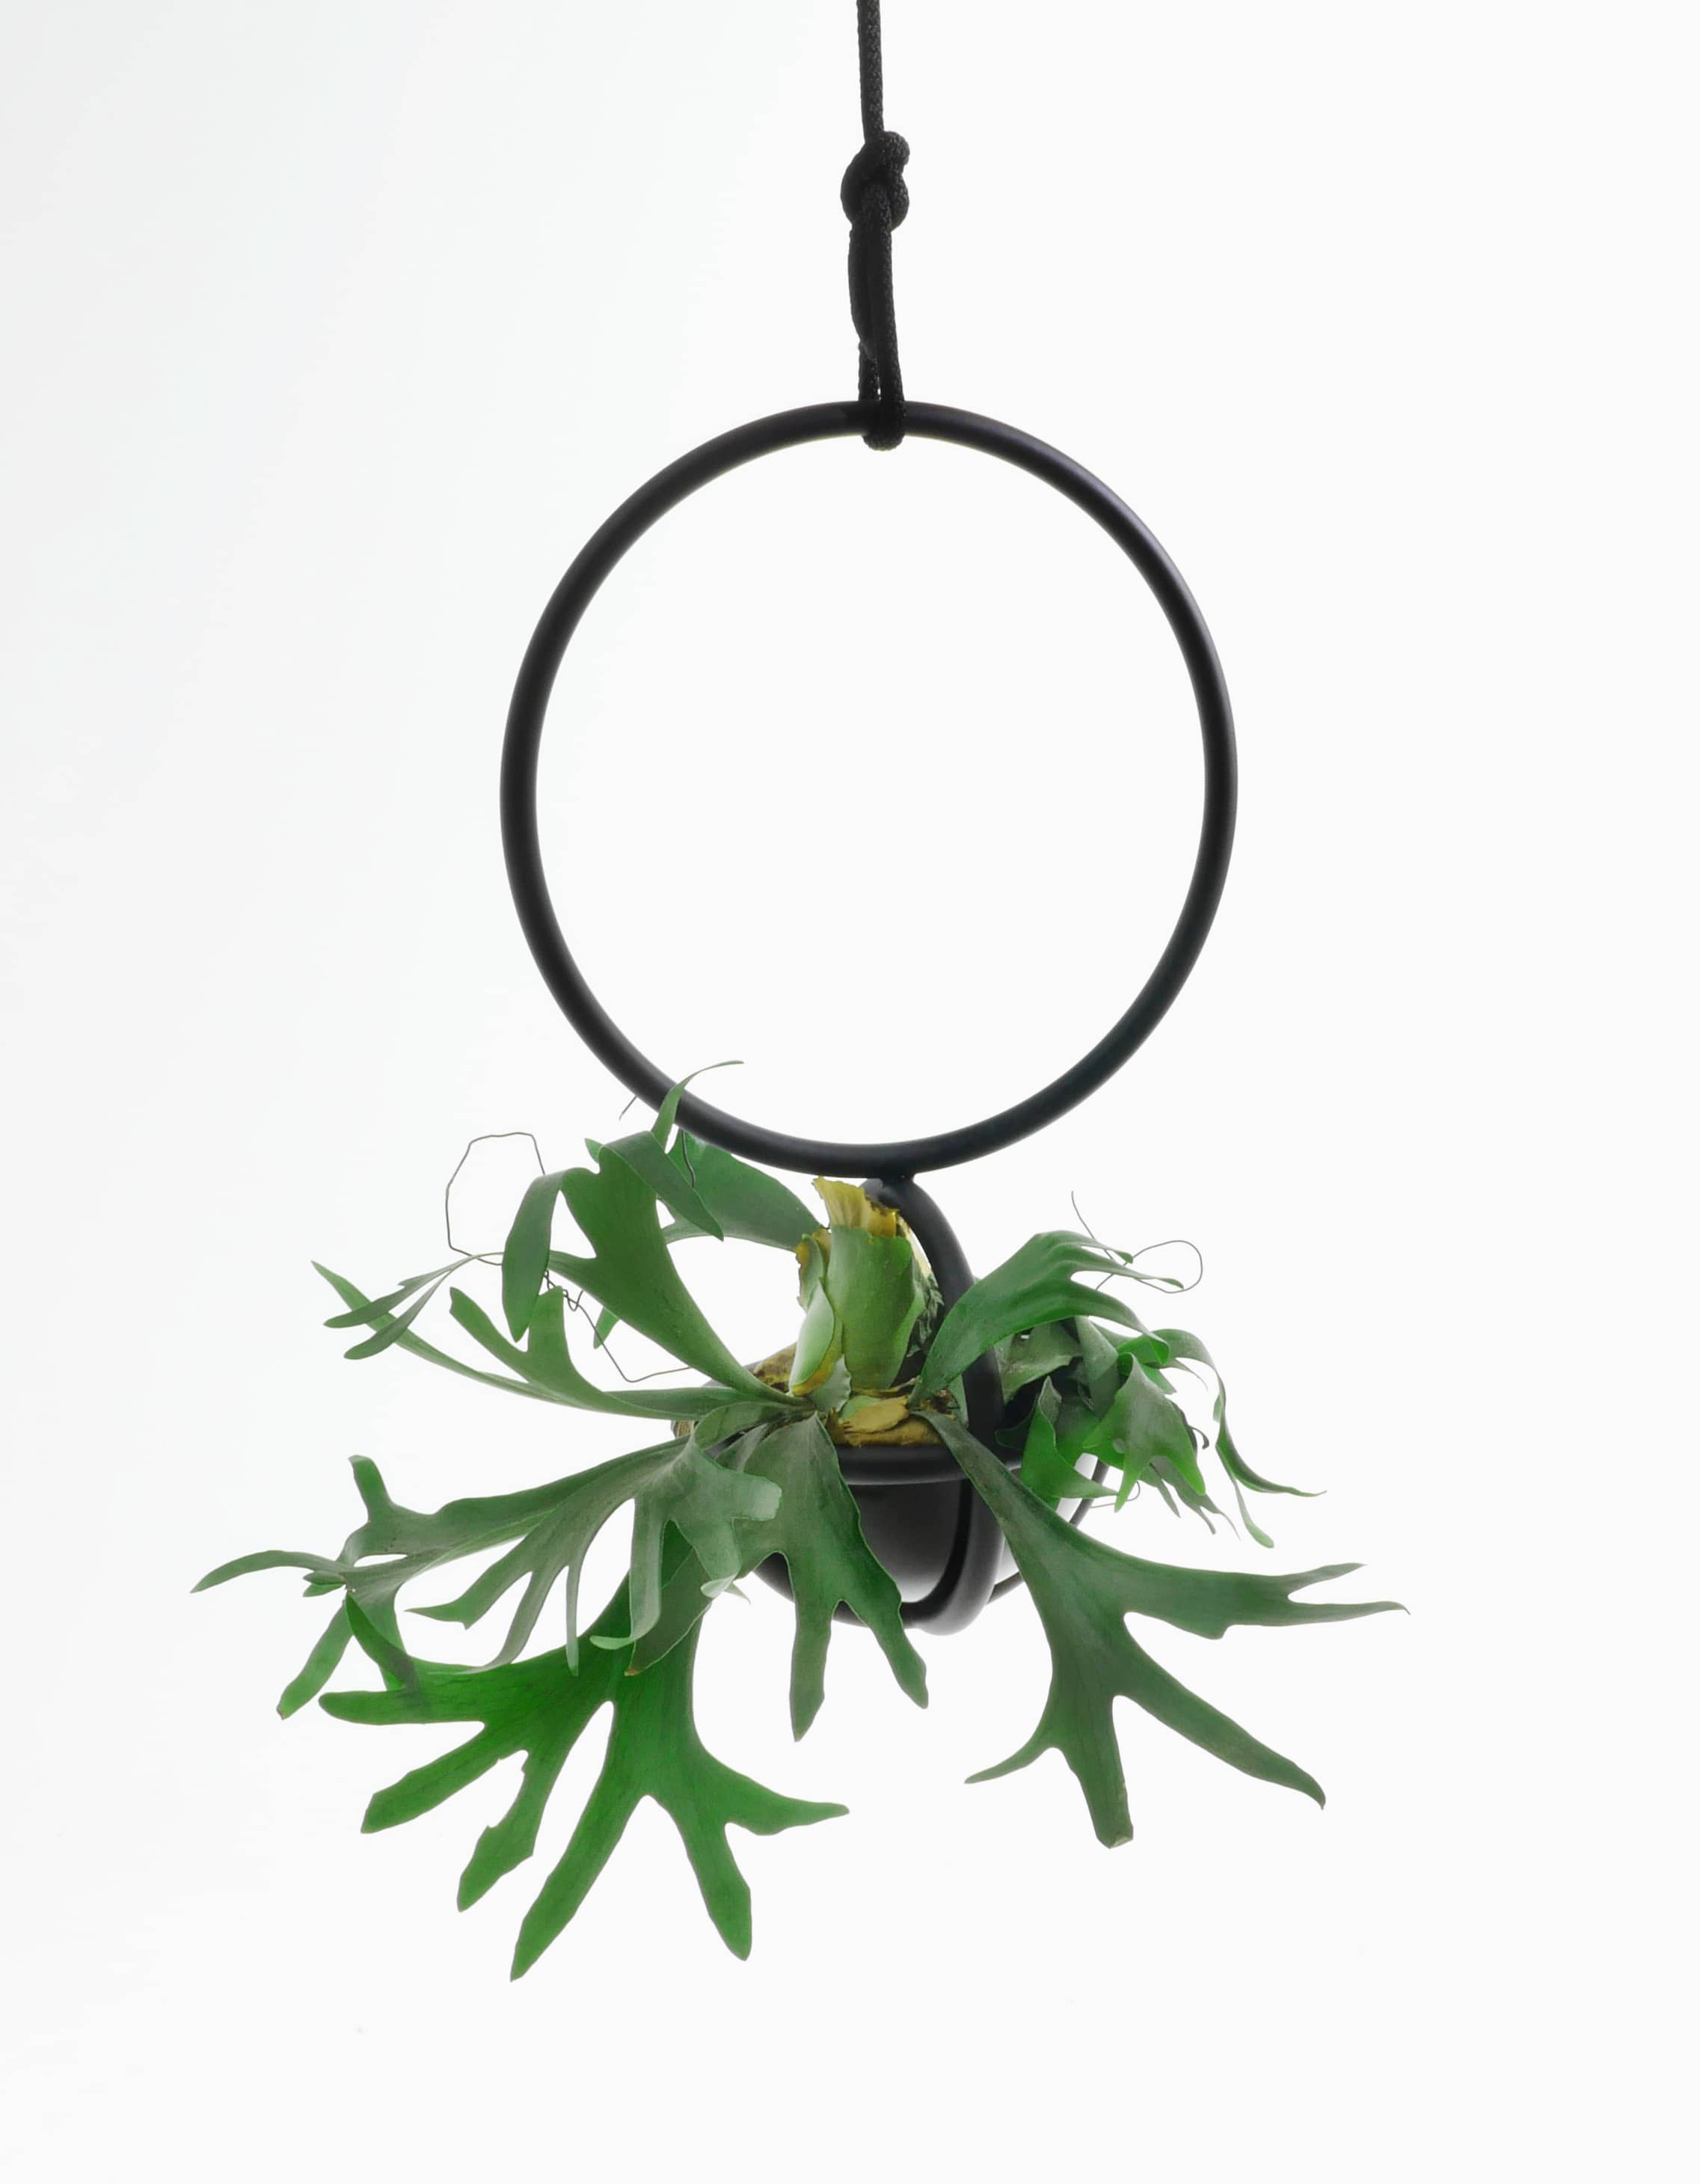 Blumenkugel design by Zascho Petkow and Andreas Haussmann, hanging basket room object